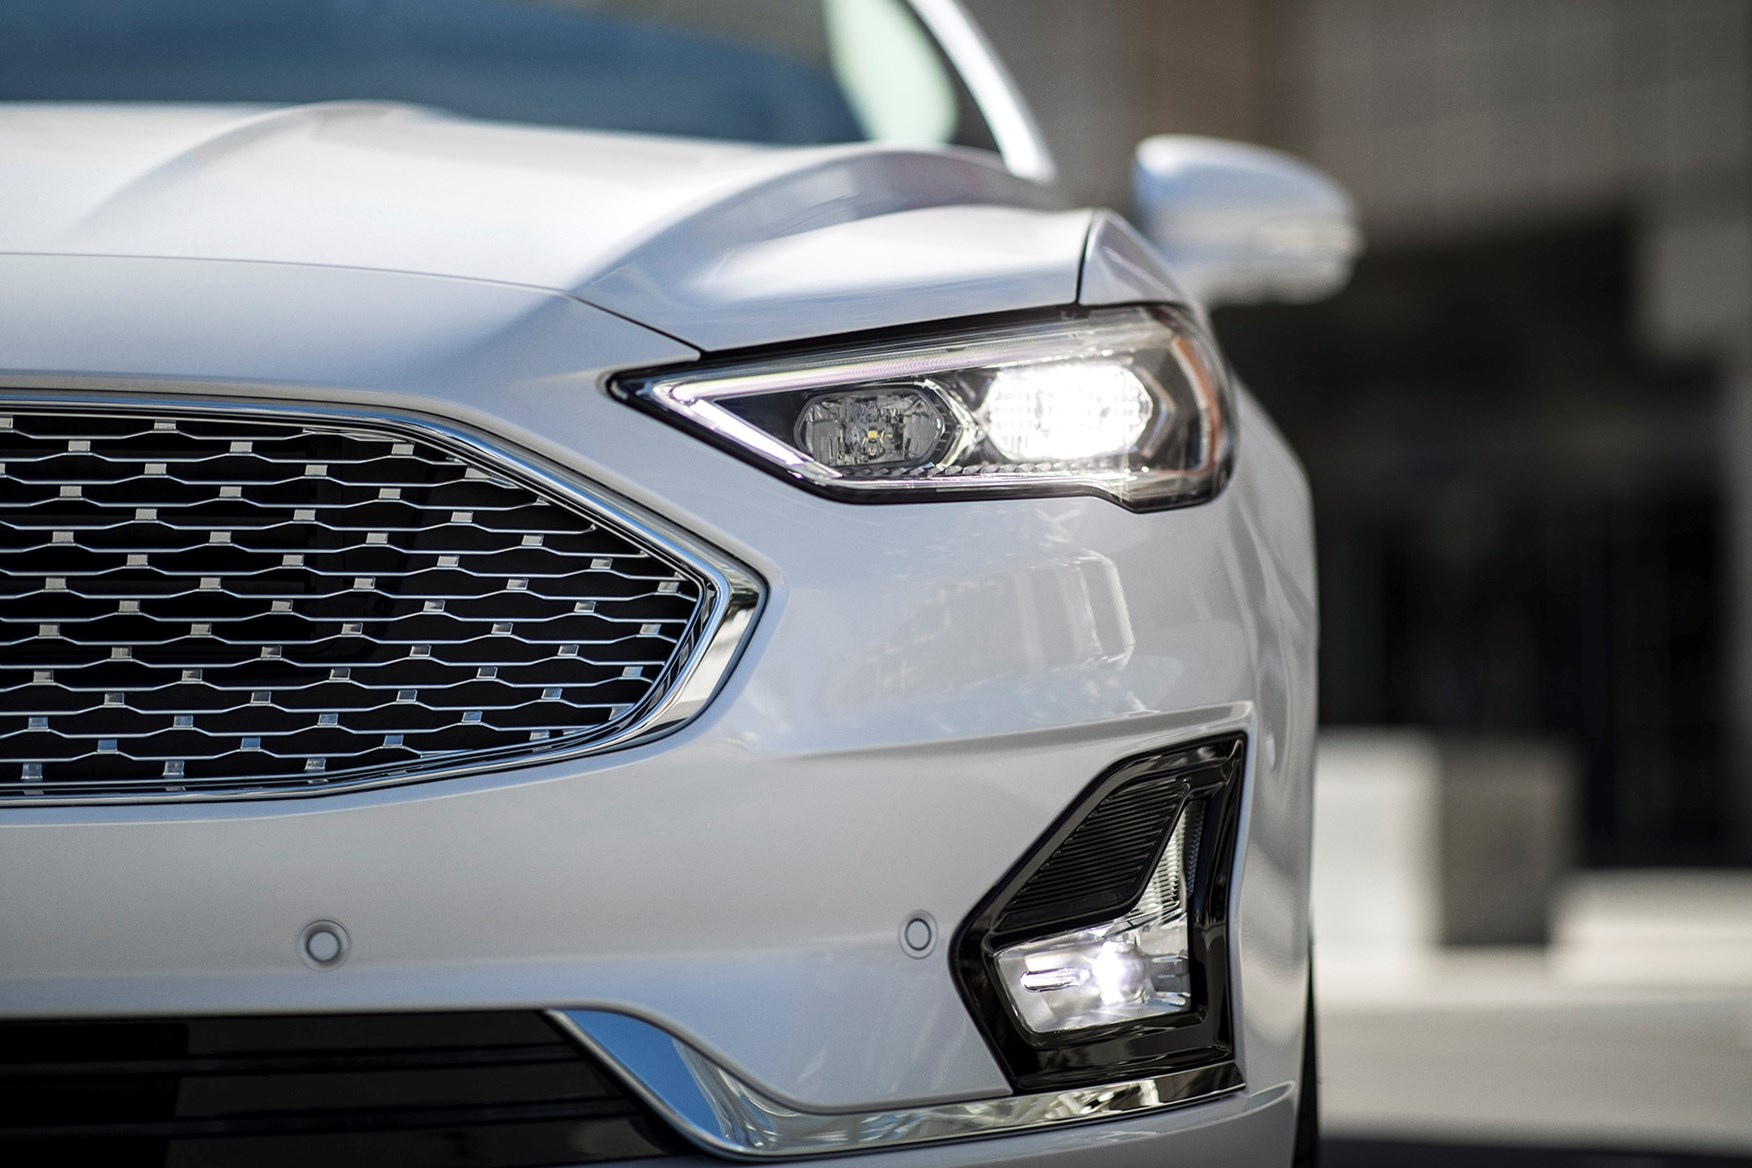 Refreshed 2019 Ford Mondeo Revised Looks And Greater